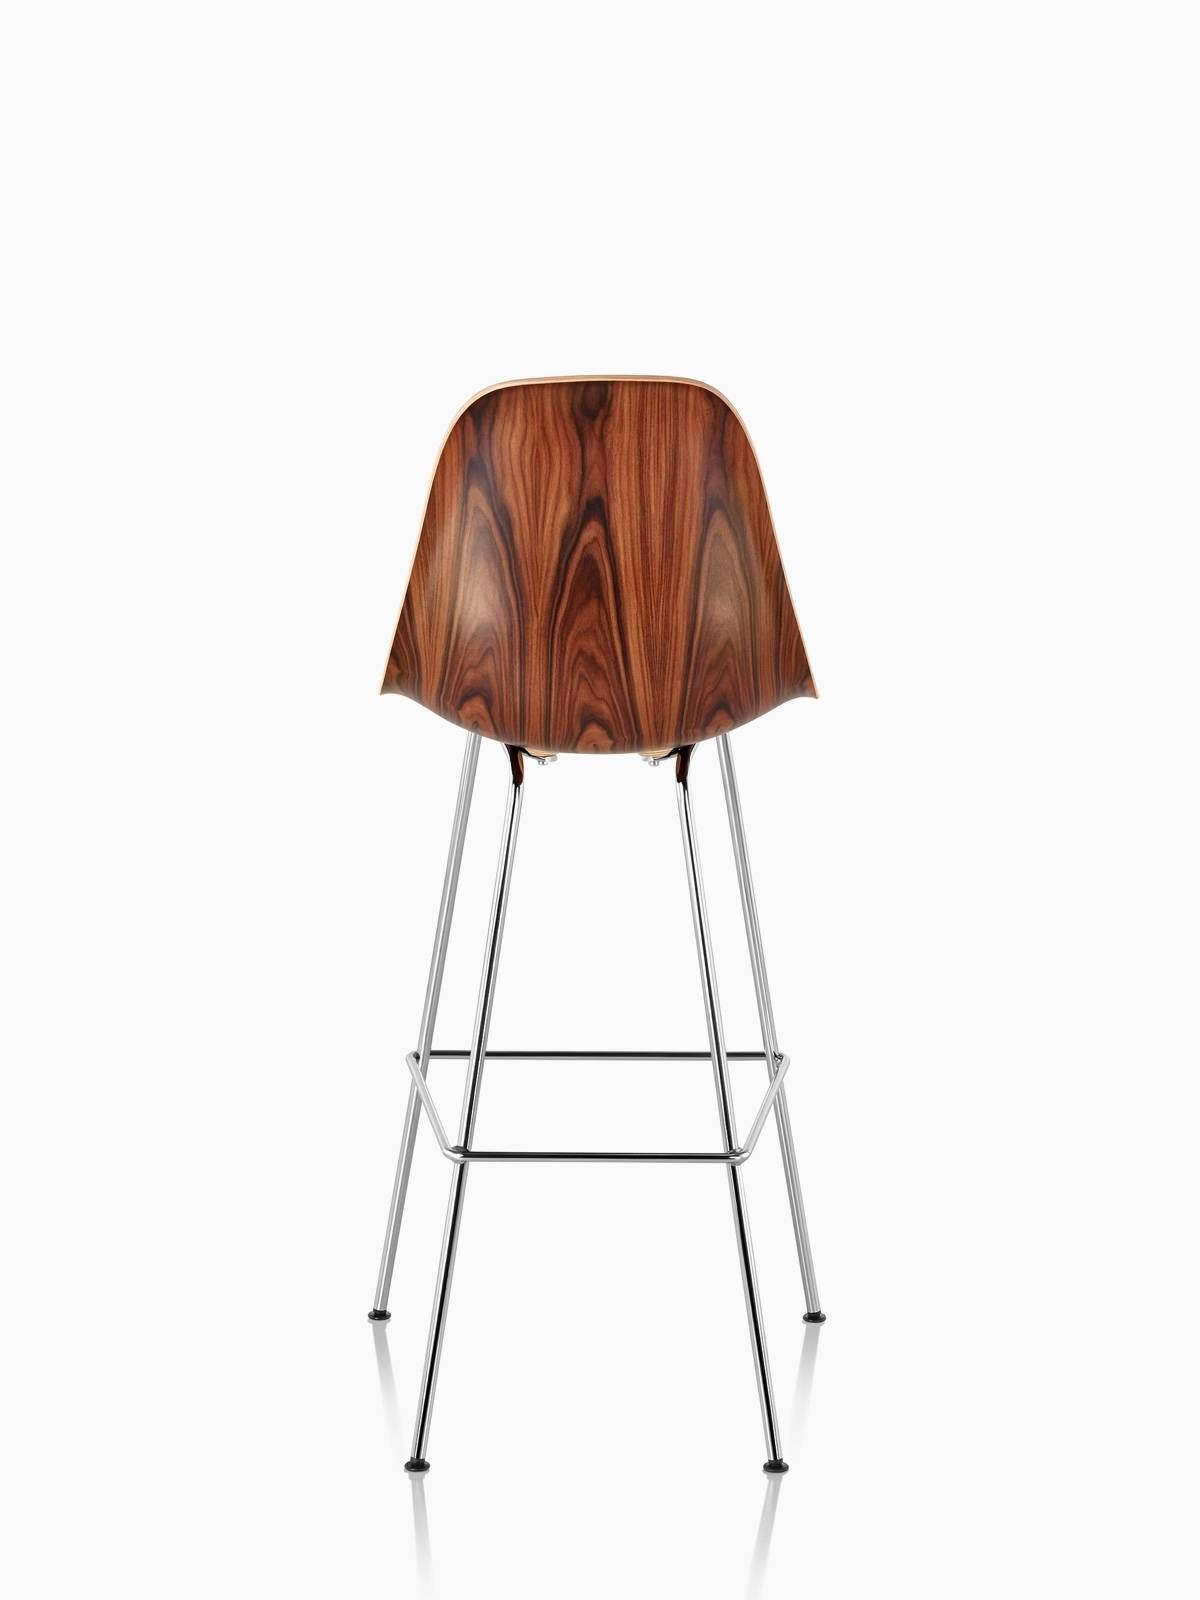 Superb Eames Molded Wood Stool Herman Miller Barstools For Machost Co Dining Chair Design Ideas Machostcouk